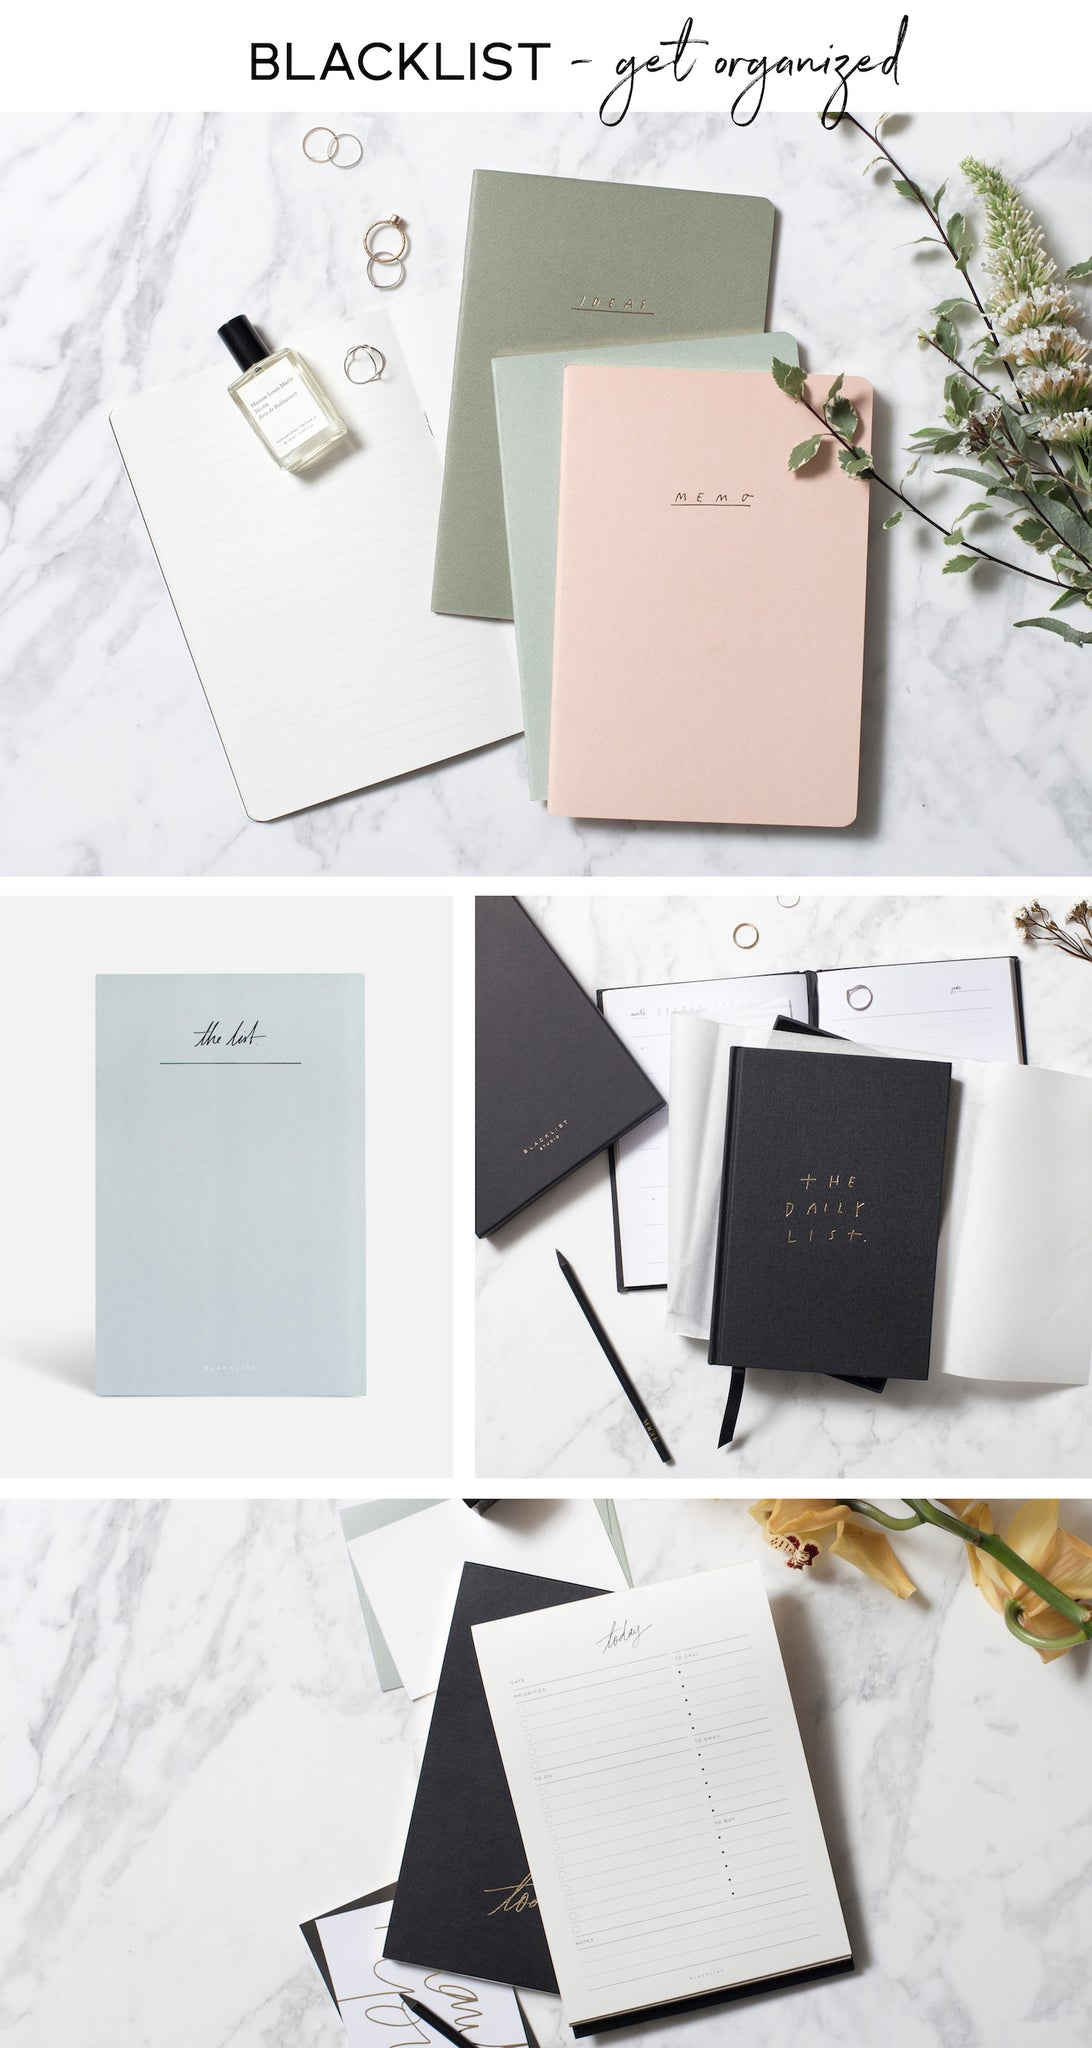 Blacklist Stationery - Paper Plane Store - NZ